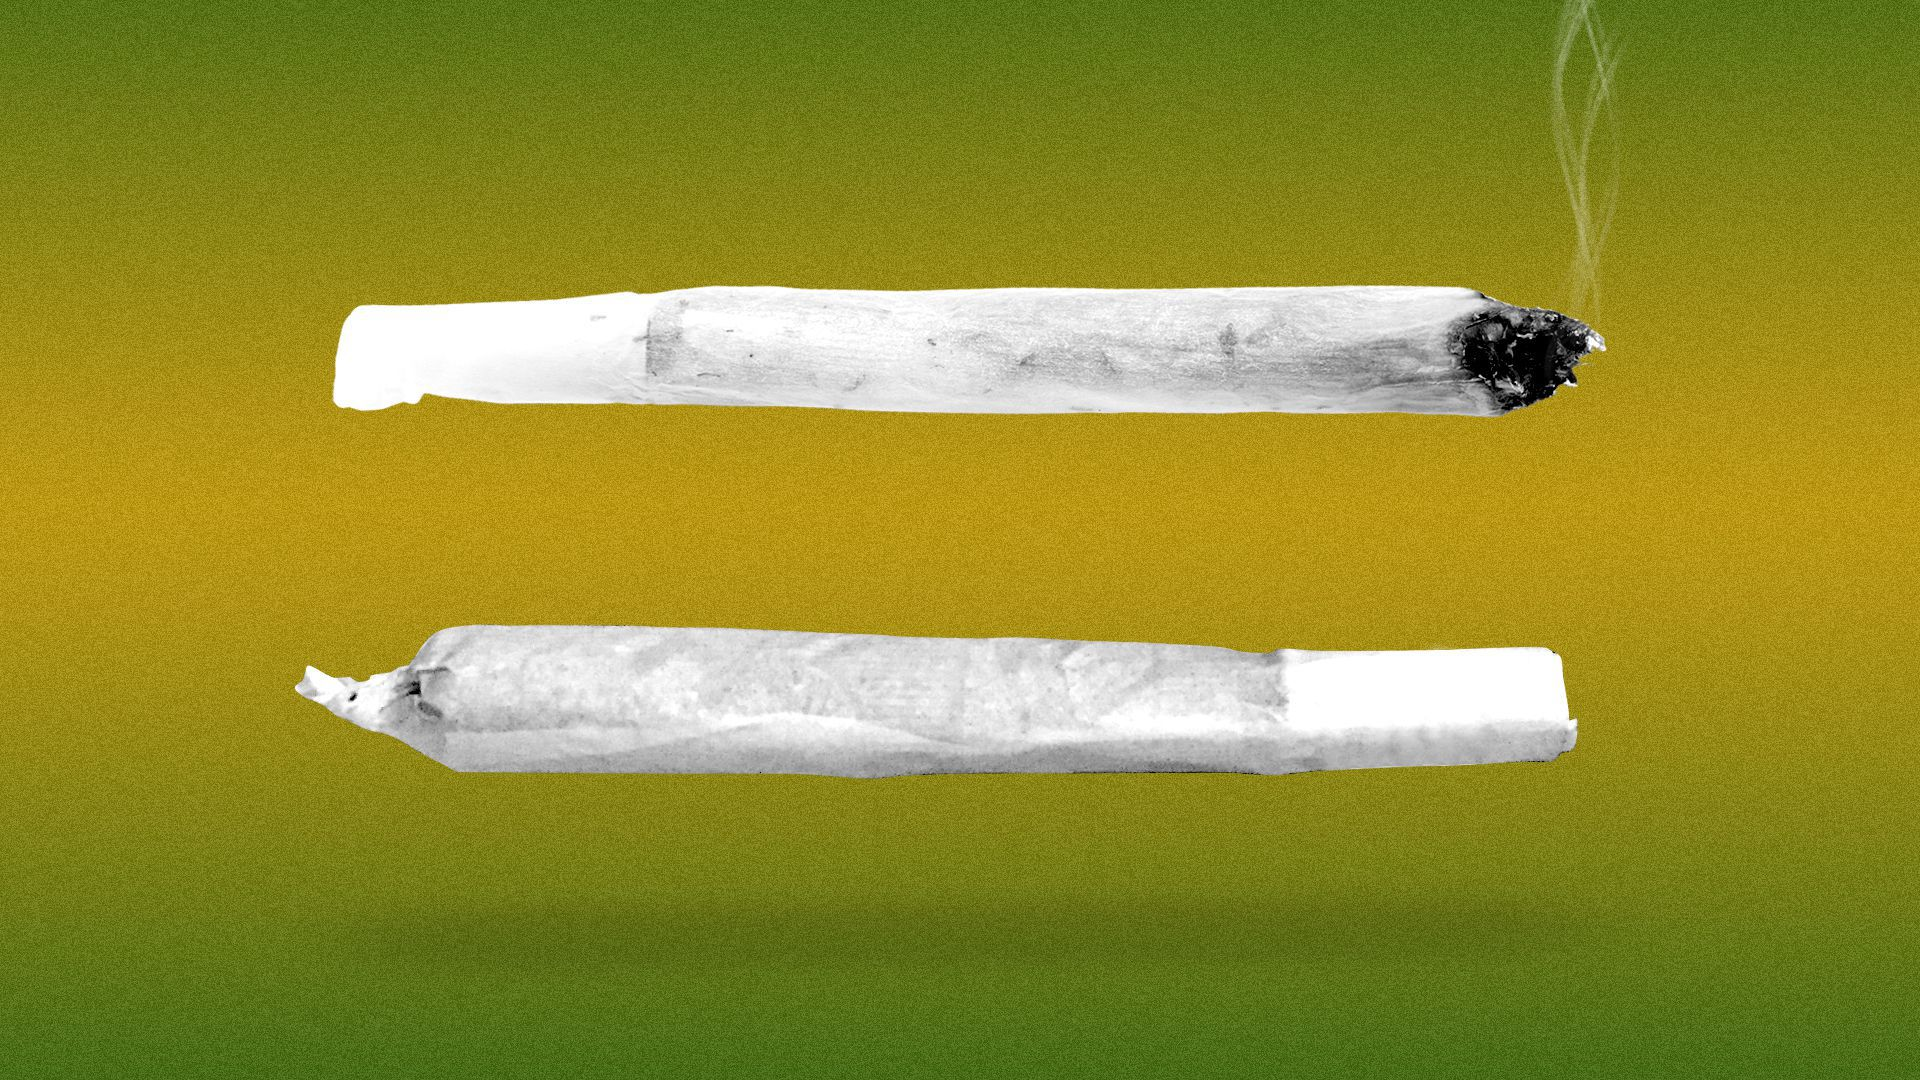 Illustration of an equals sign made out of two marijuana joints.